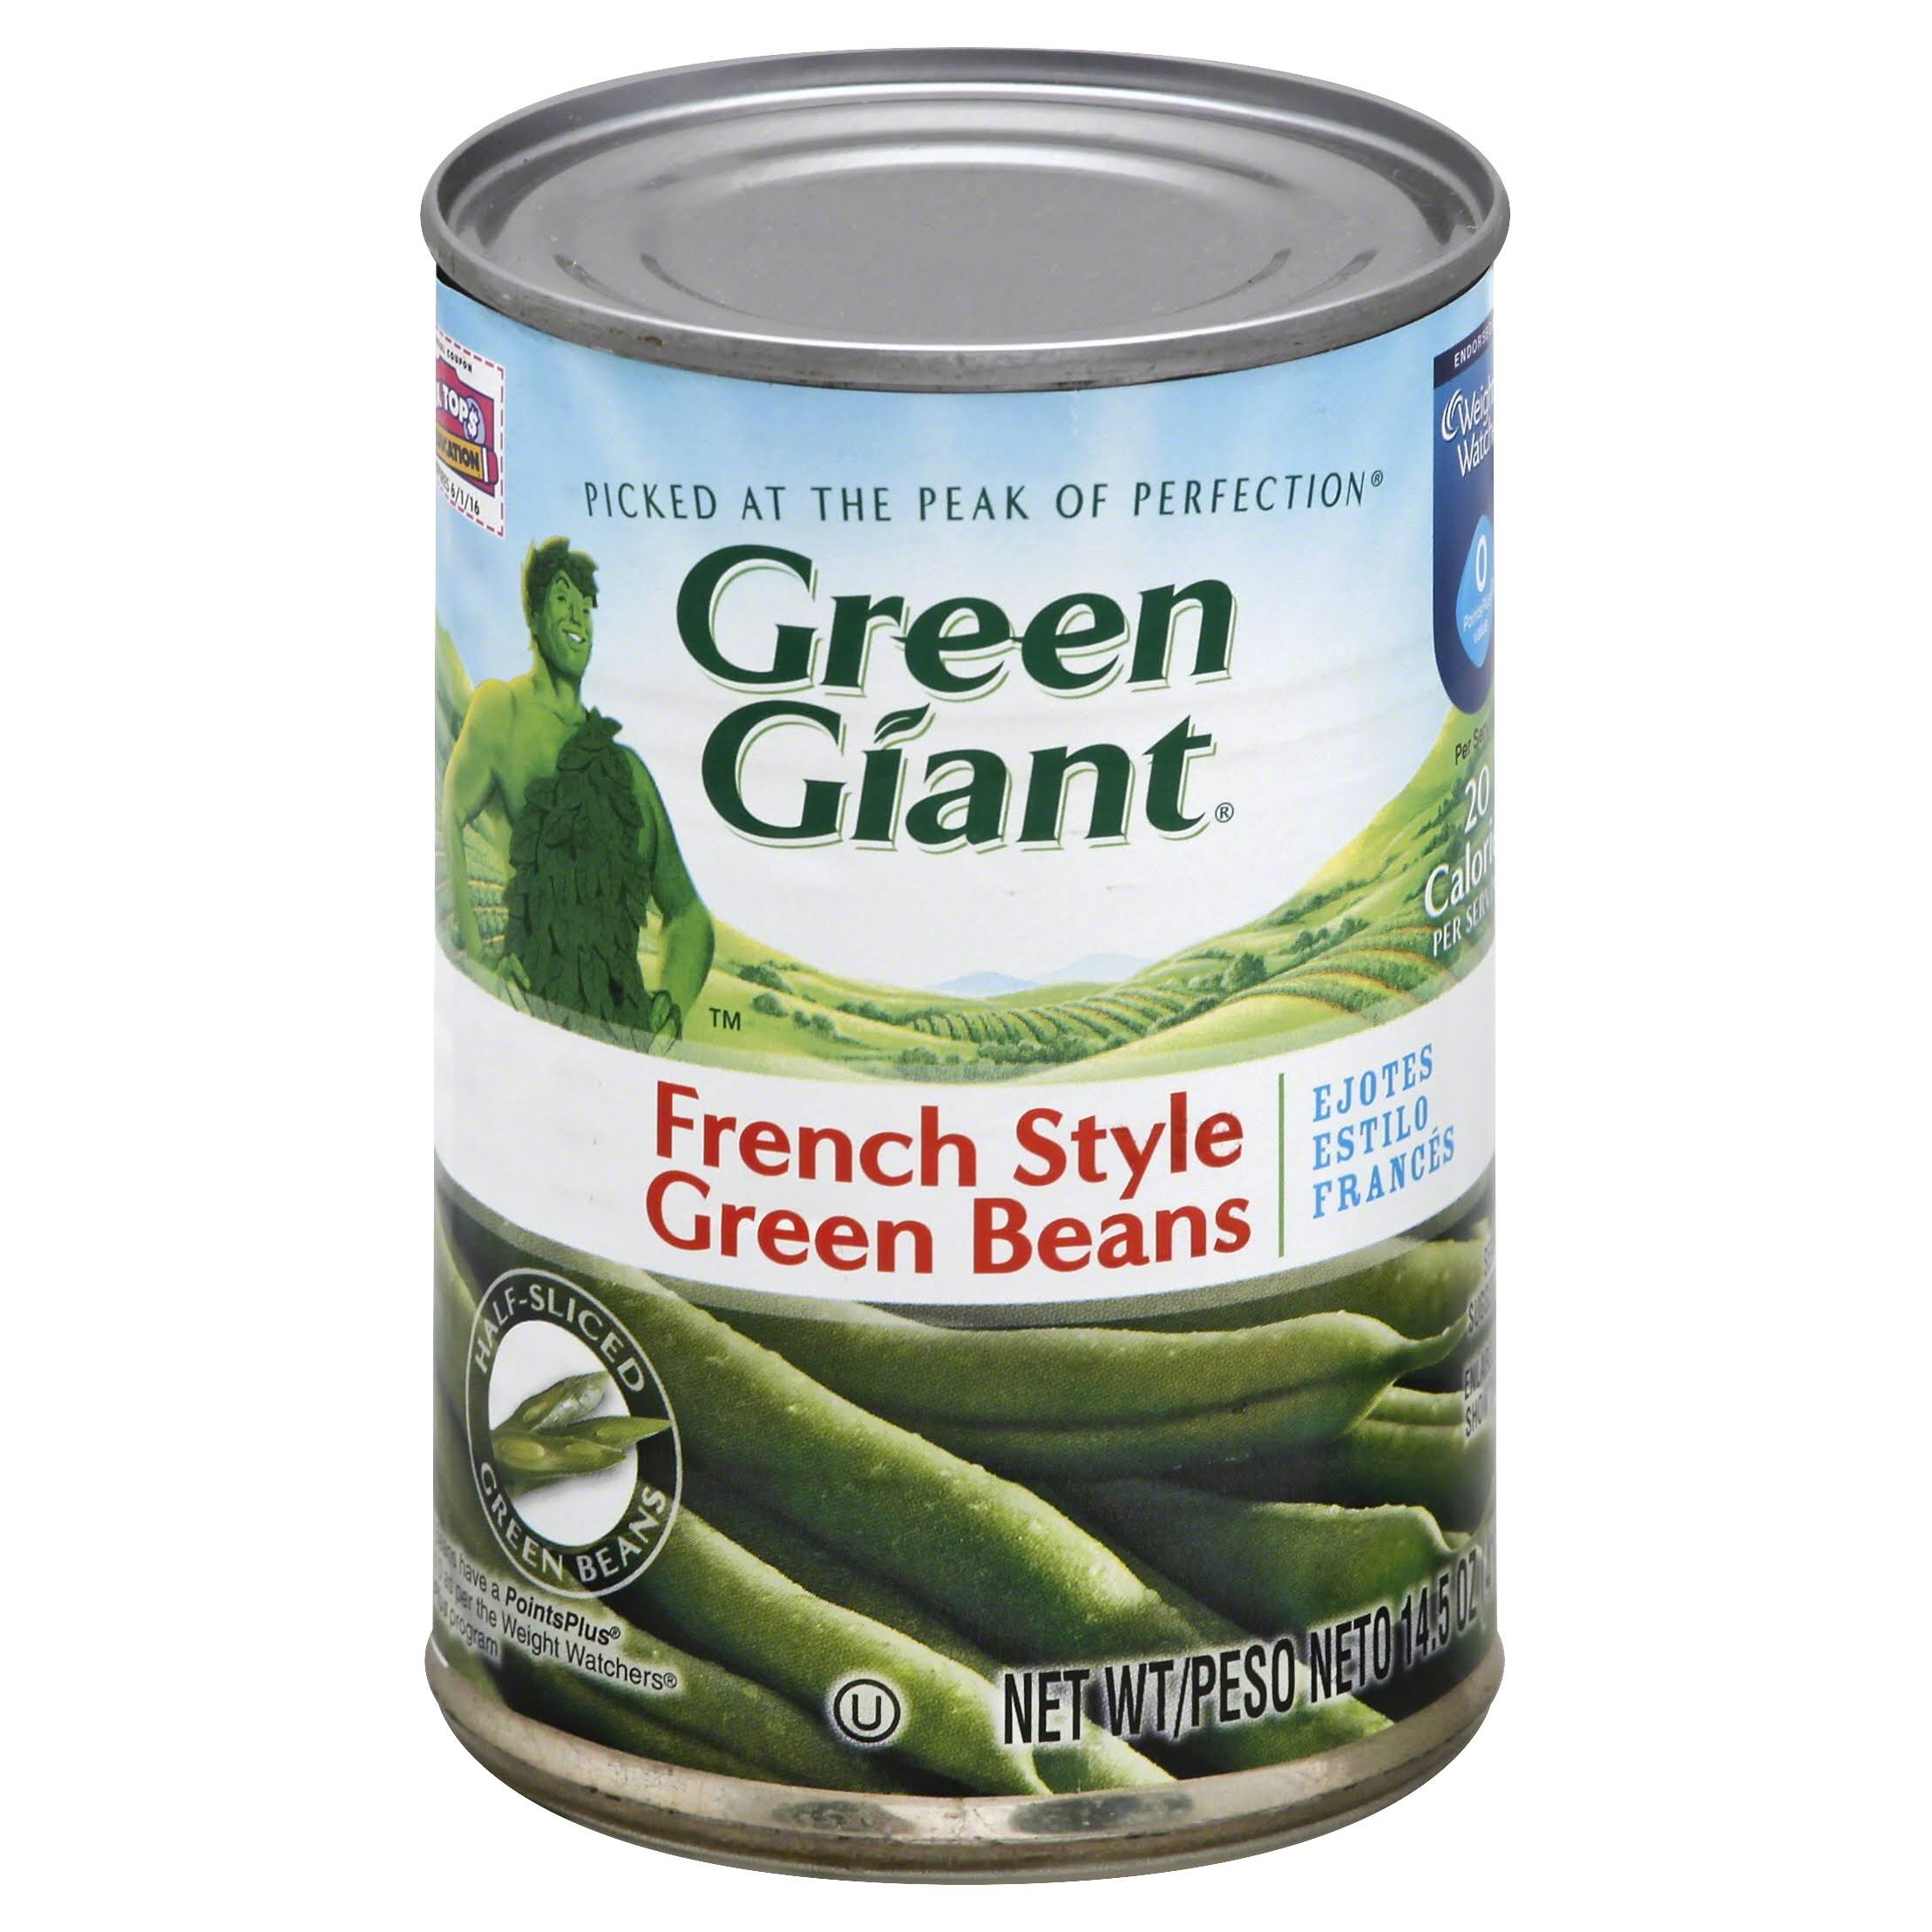 Green Giant French Style Green Beans - 14.5oz